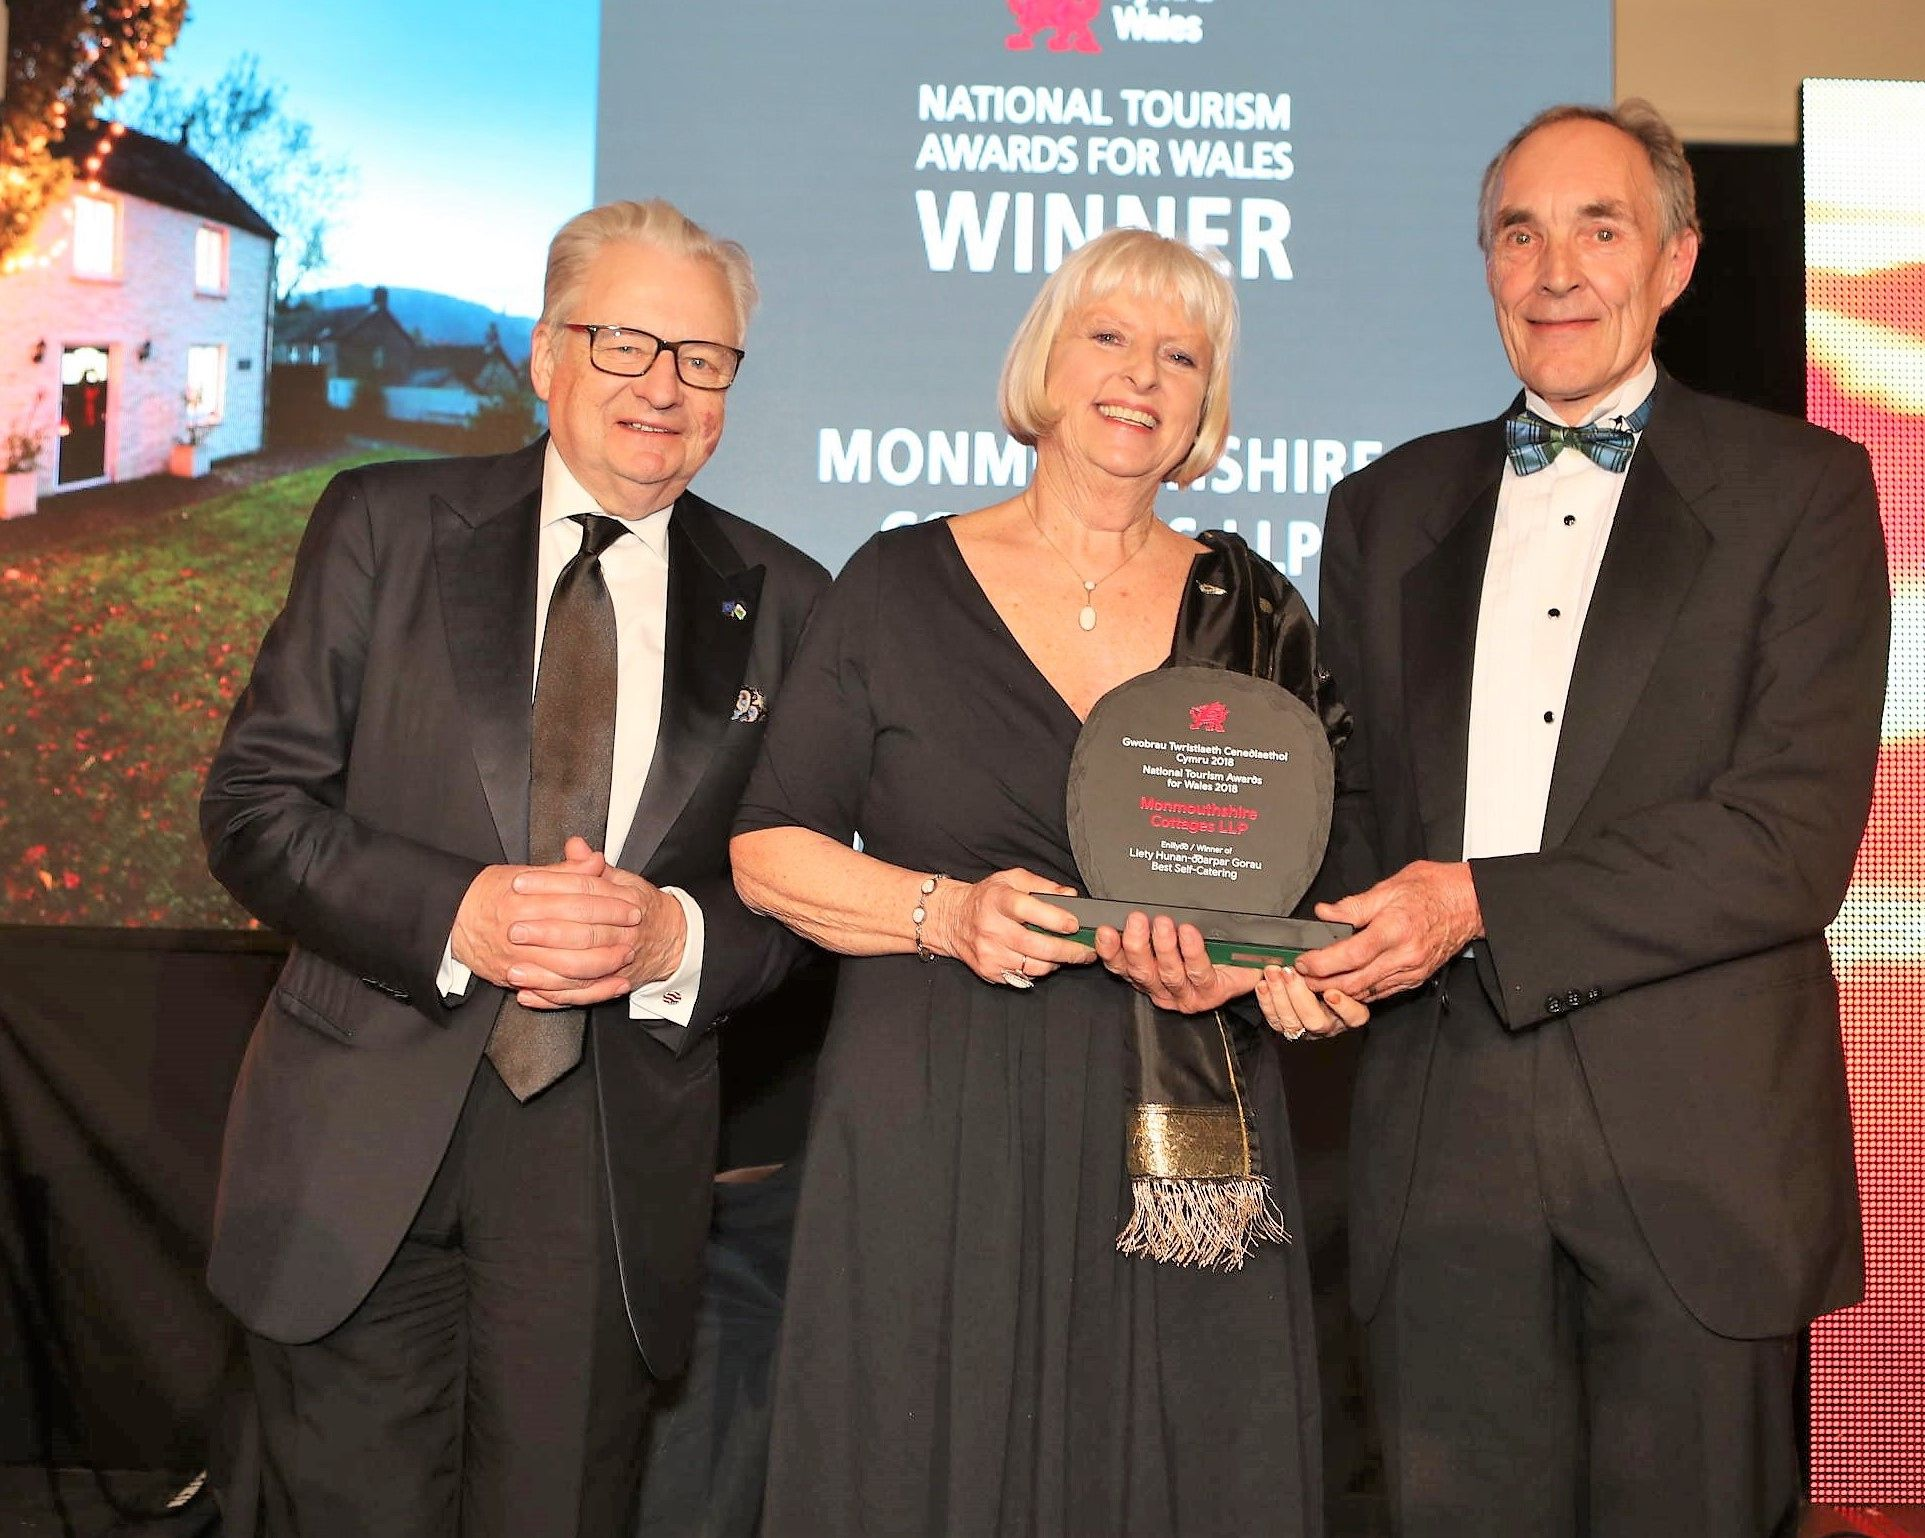 Monmouthshire Cottages best self catering in Wales- official!